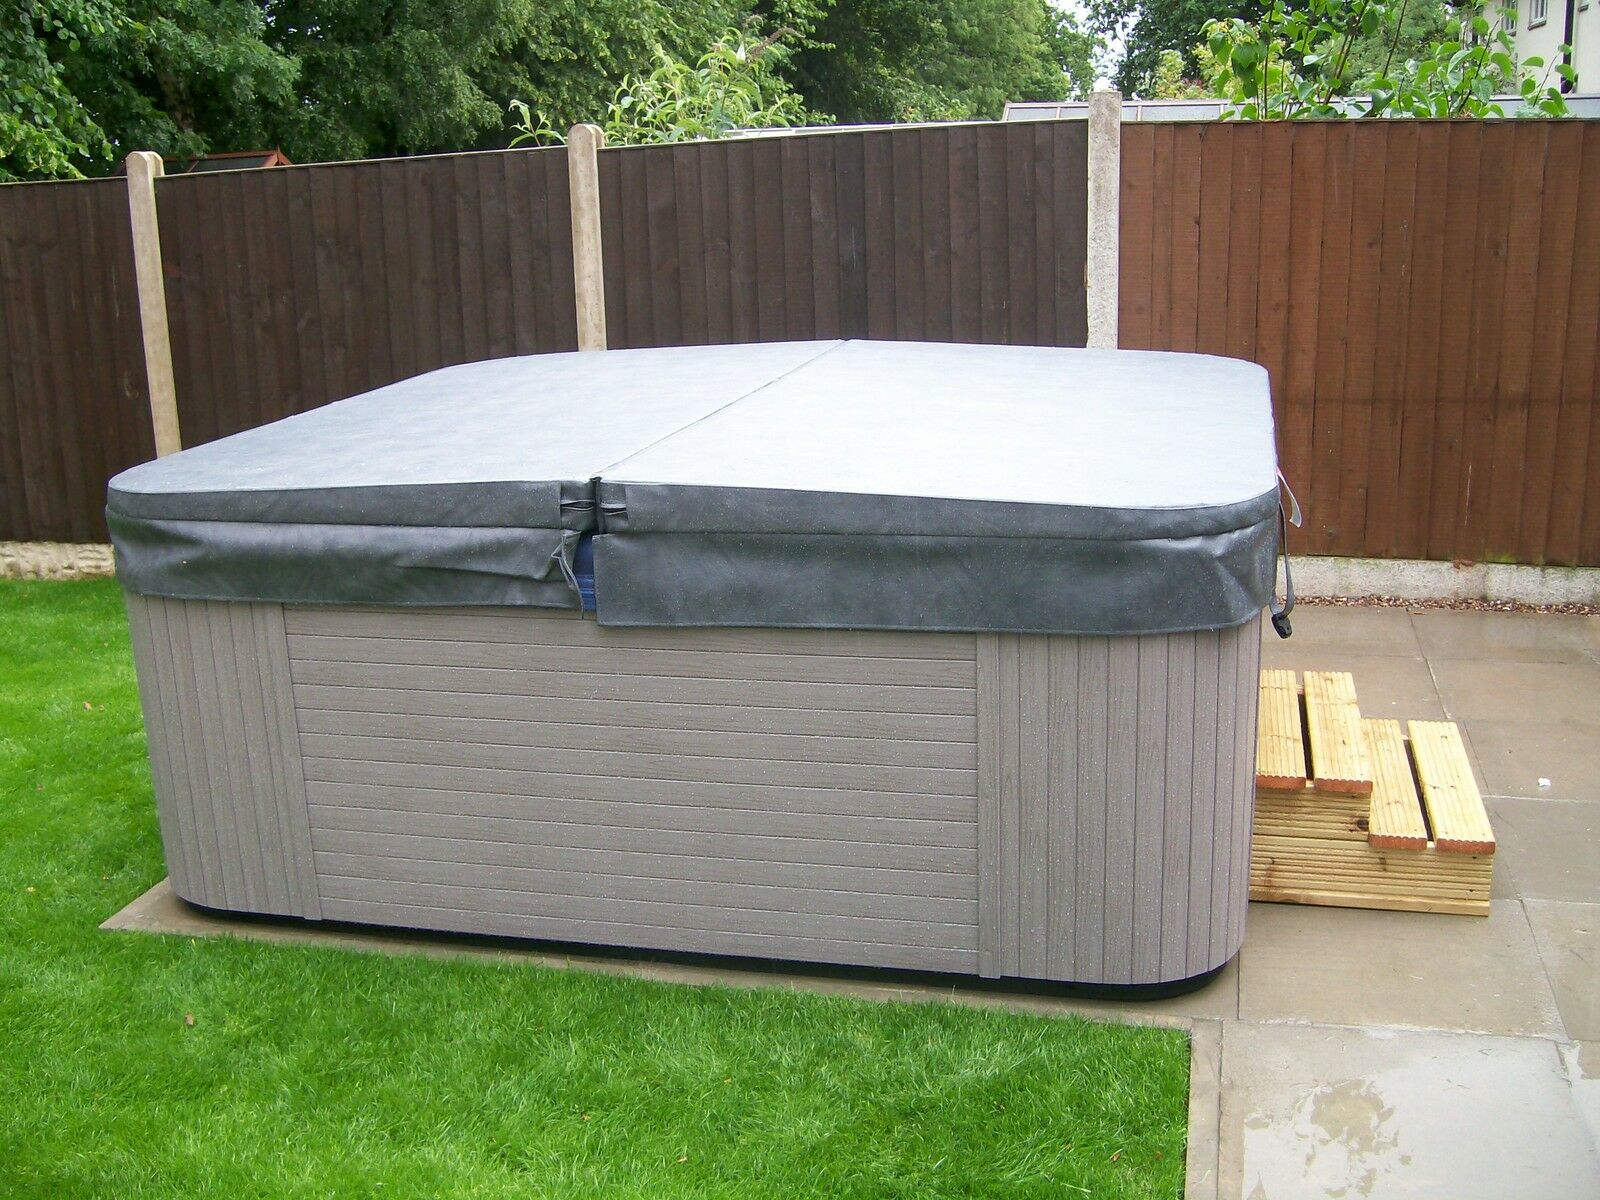 Items in Wizard Hot tubs and whirlpools shop on eBay